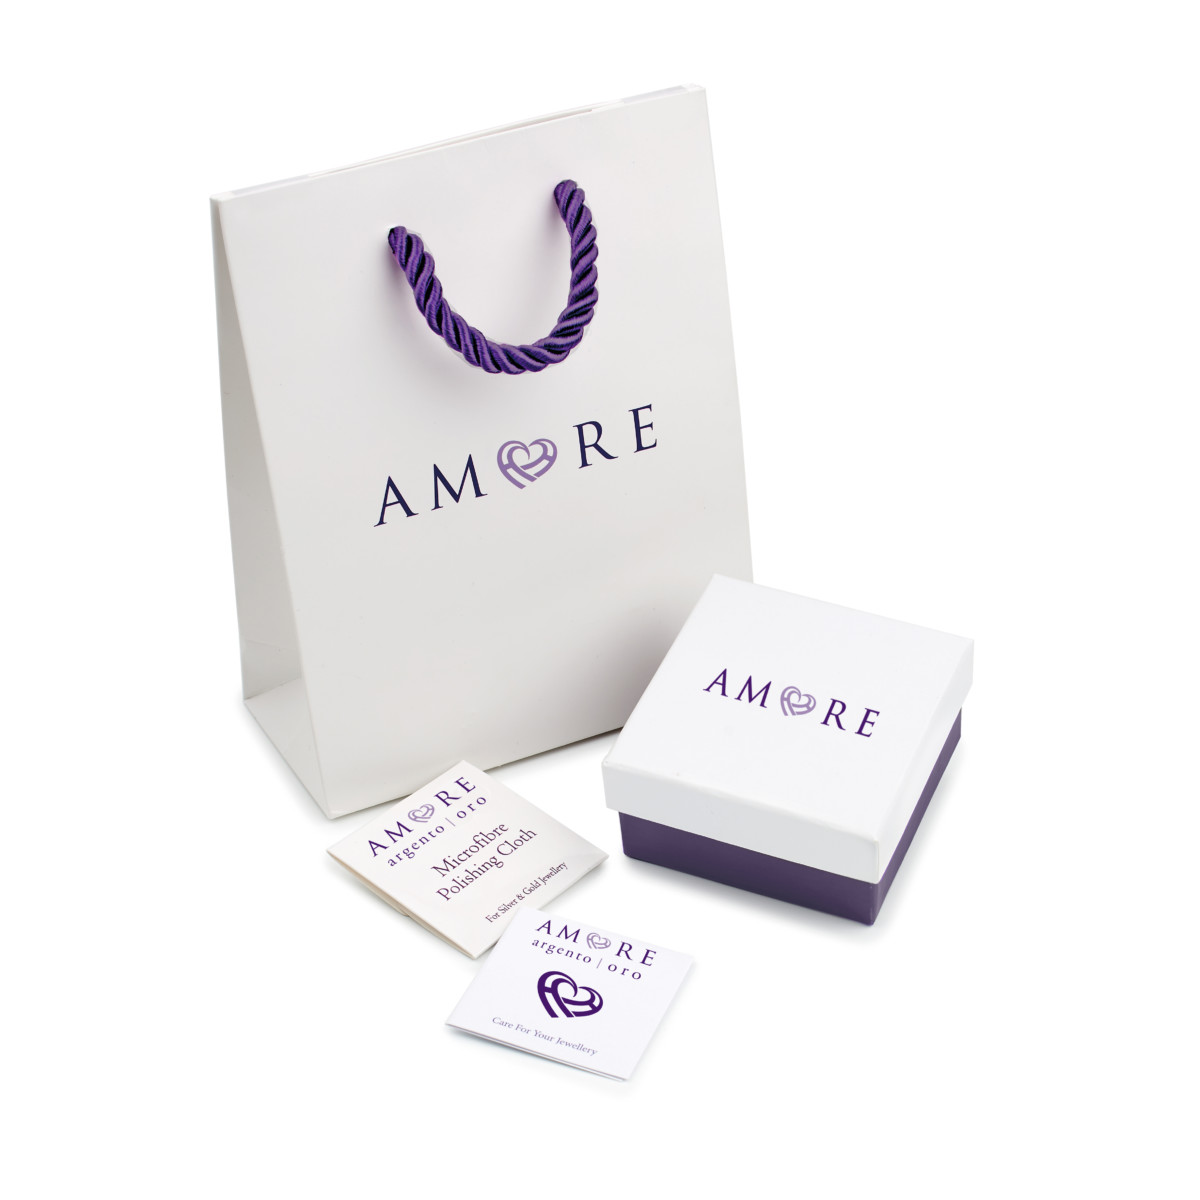 amore-argento-packaging-2016